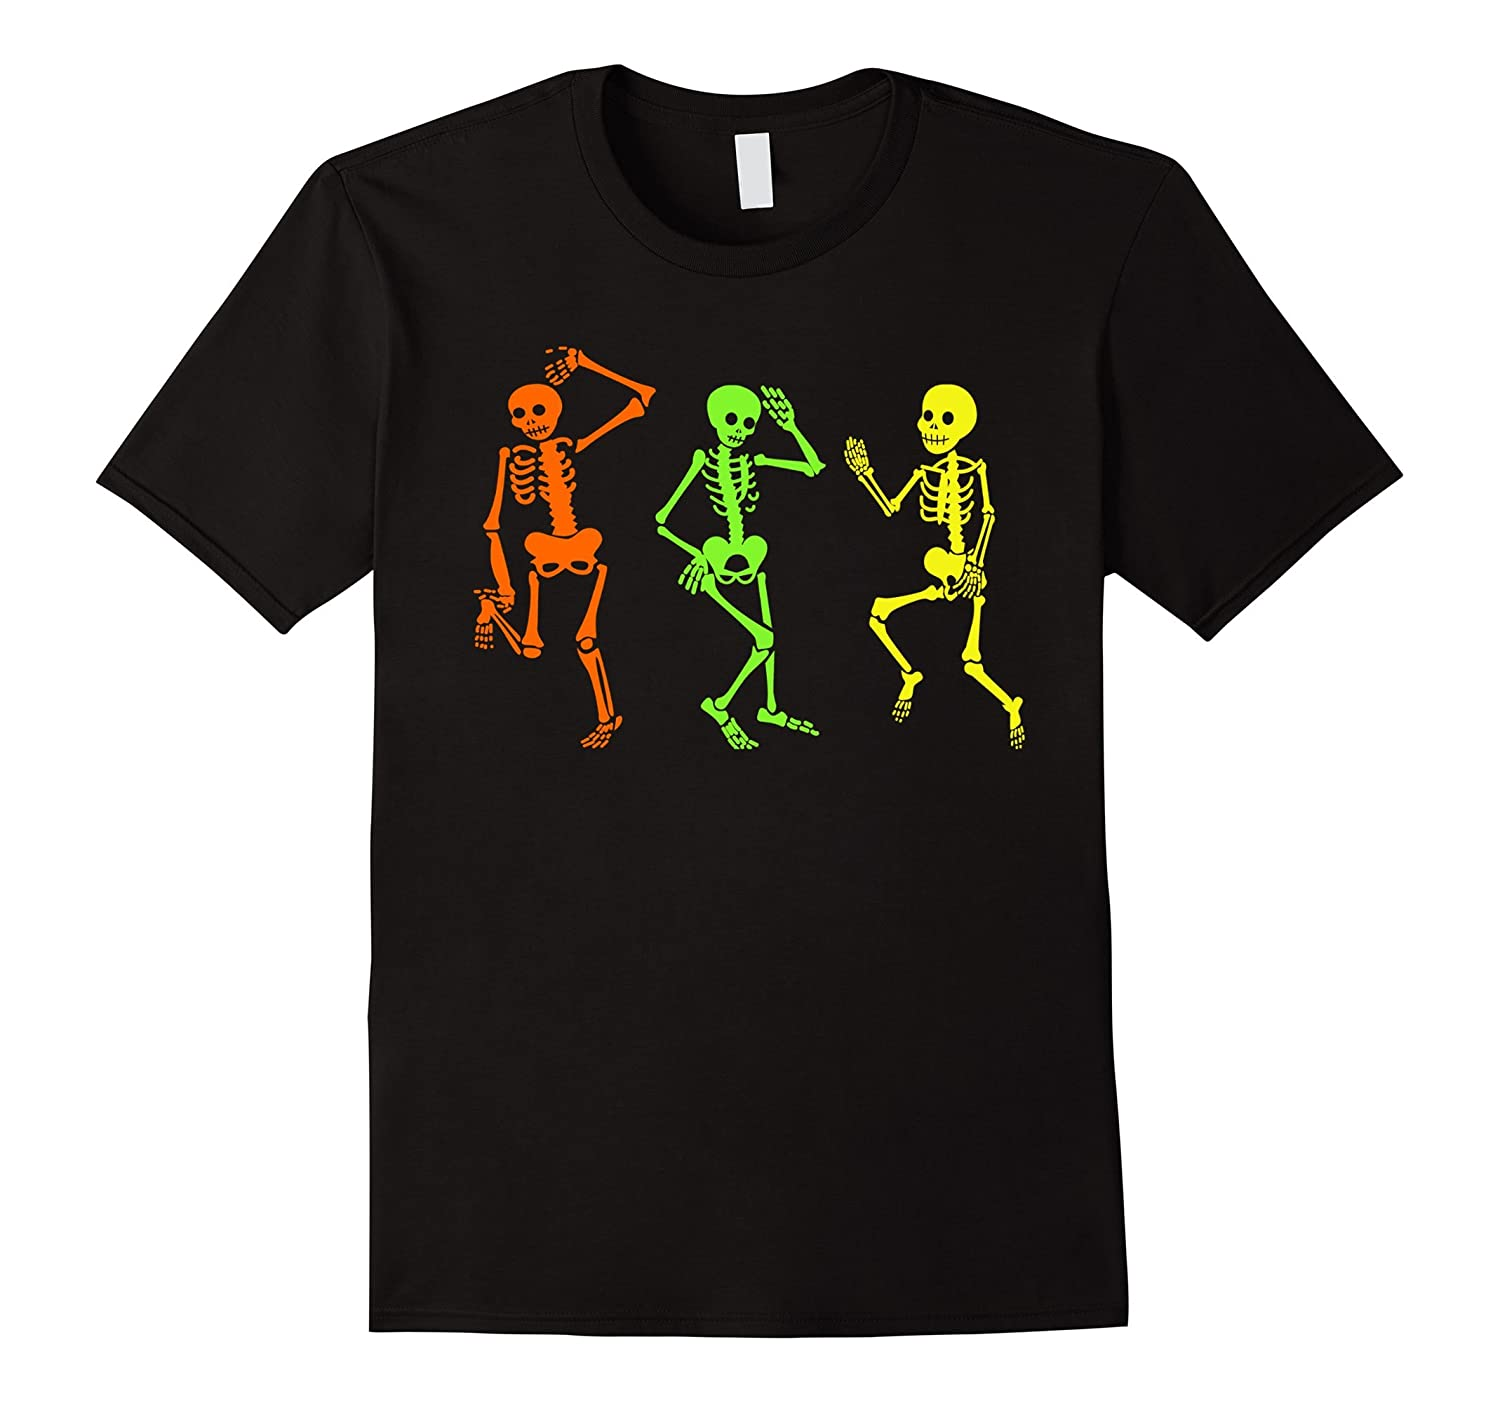 Skeleton tshirt Halloween Costume Three Glow in the Dark-FL